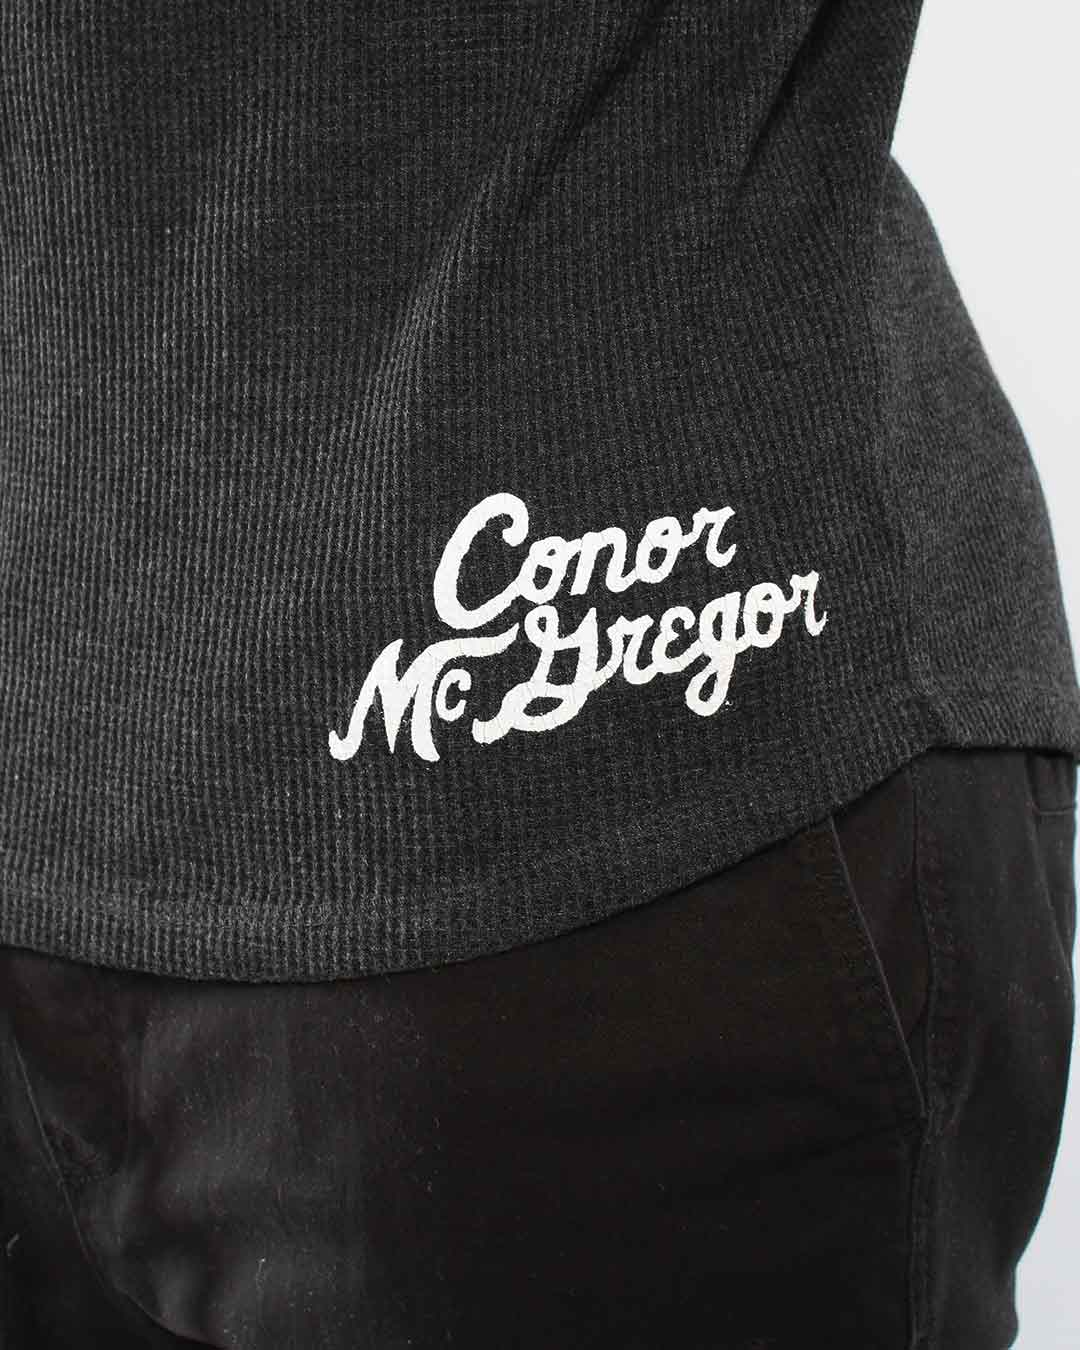 Conor McGregor CM12 Long Sleeve - Copasetic Clothing Ltd. dba Roots of Fight